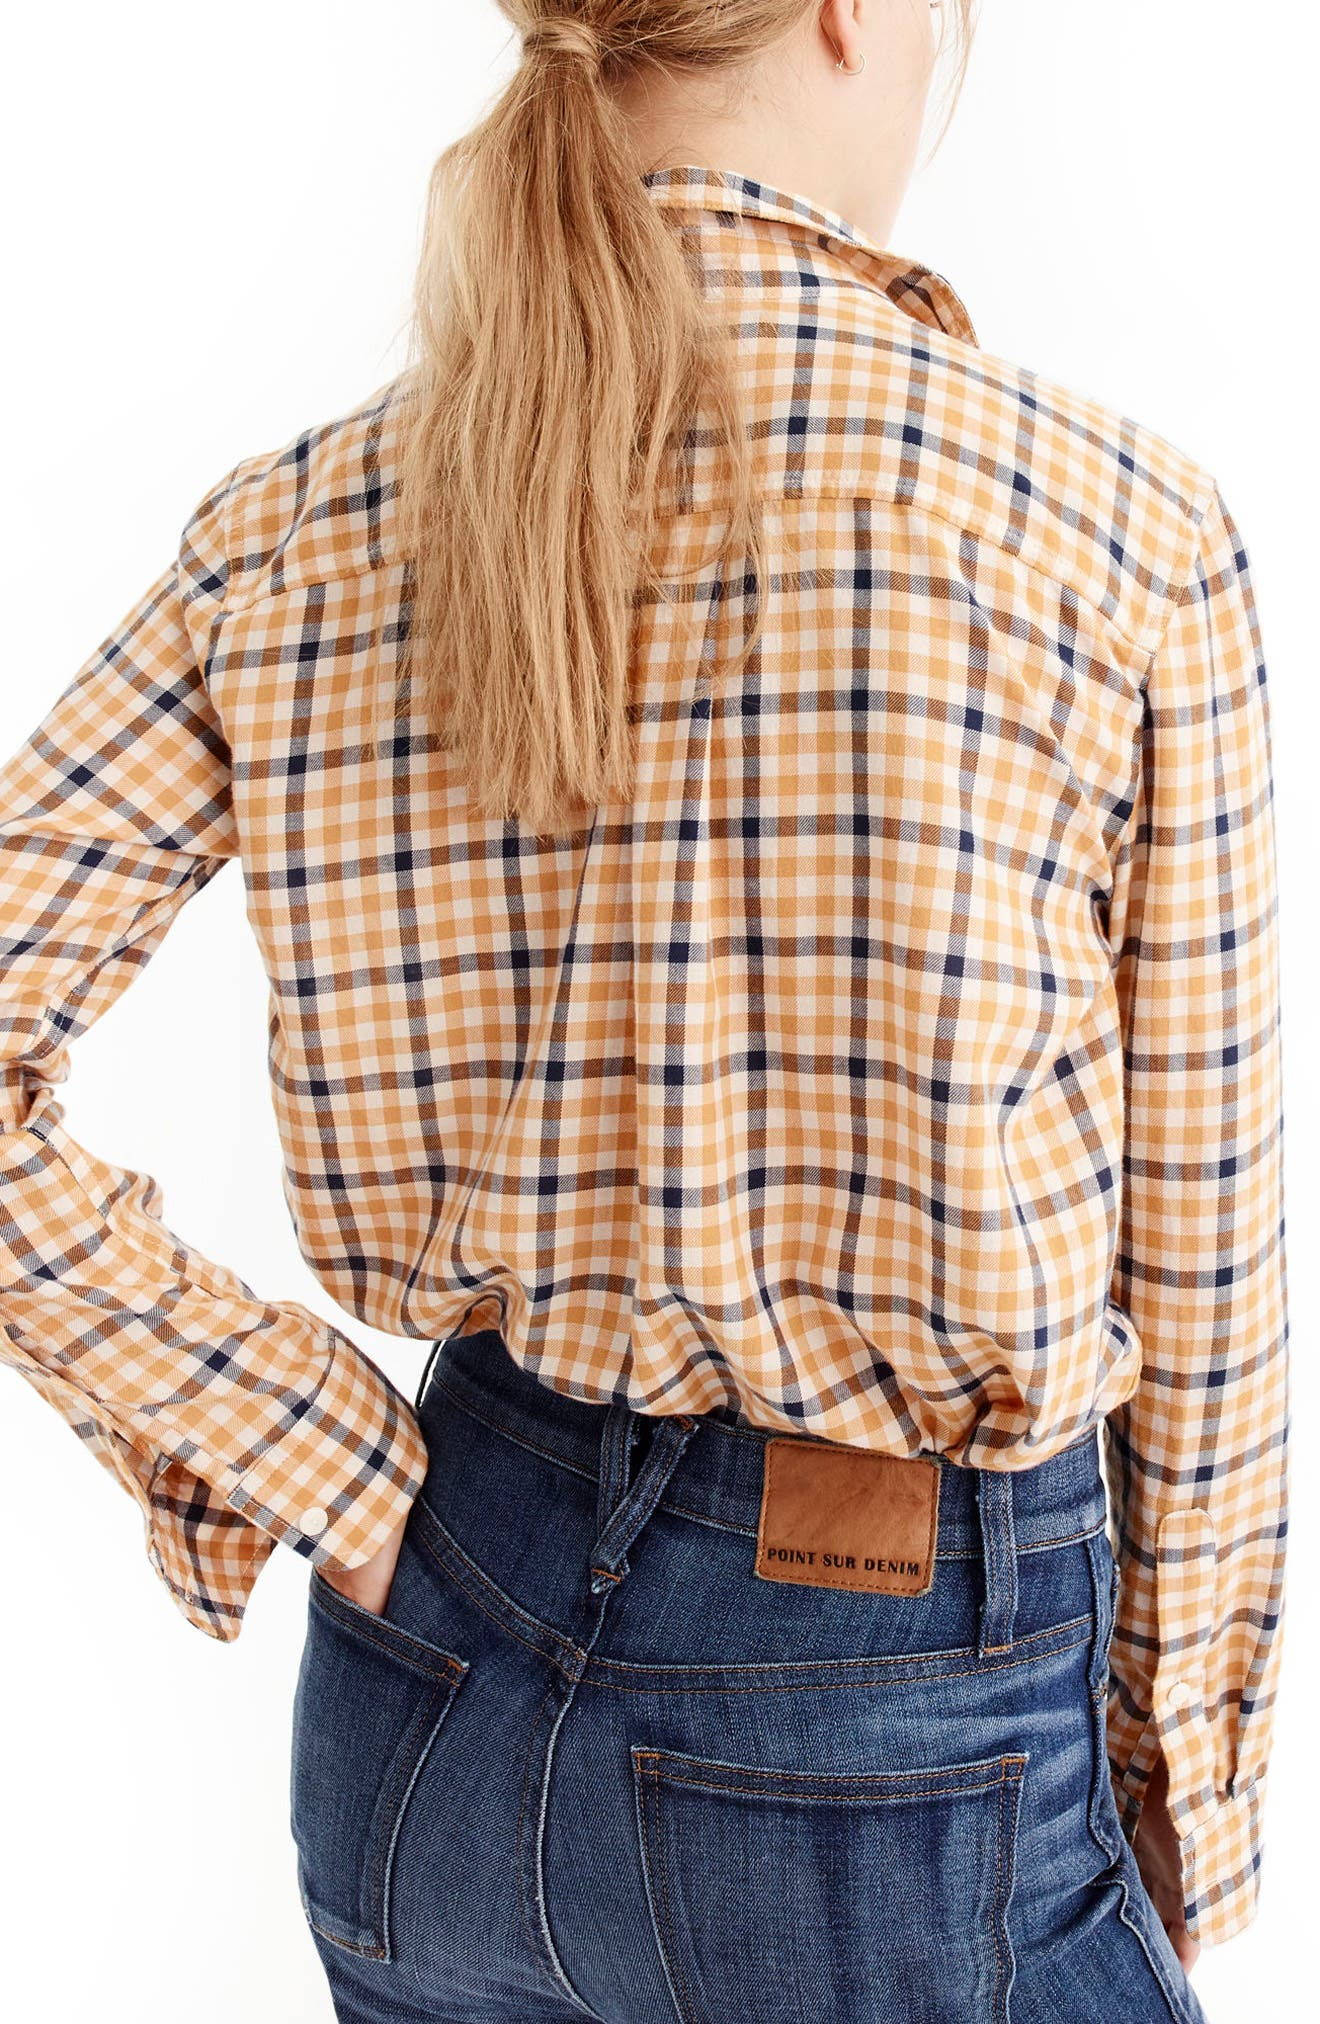 J.Crew Topaz Plaid Boyfriend Shirt,                             Alternate thumbnail 2, color,                             Bronzed Topaz